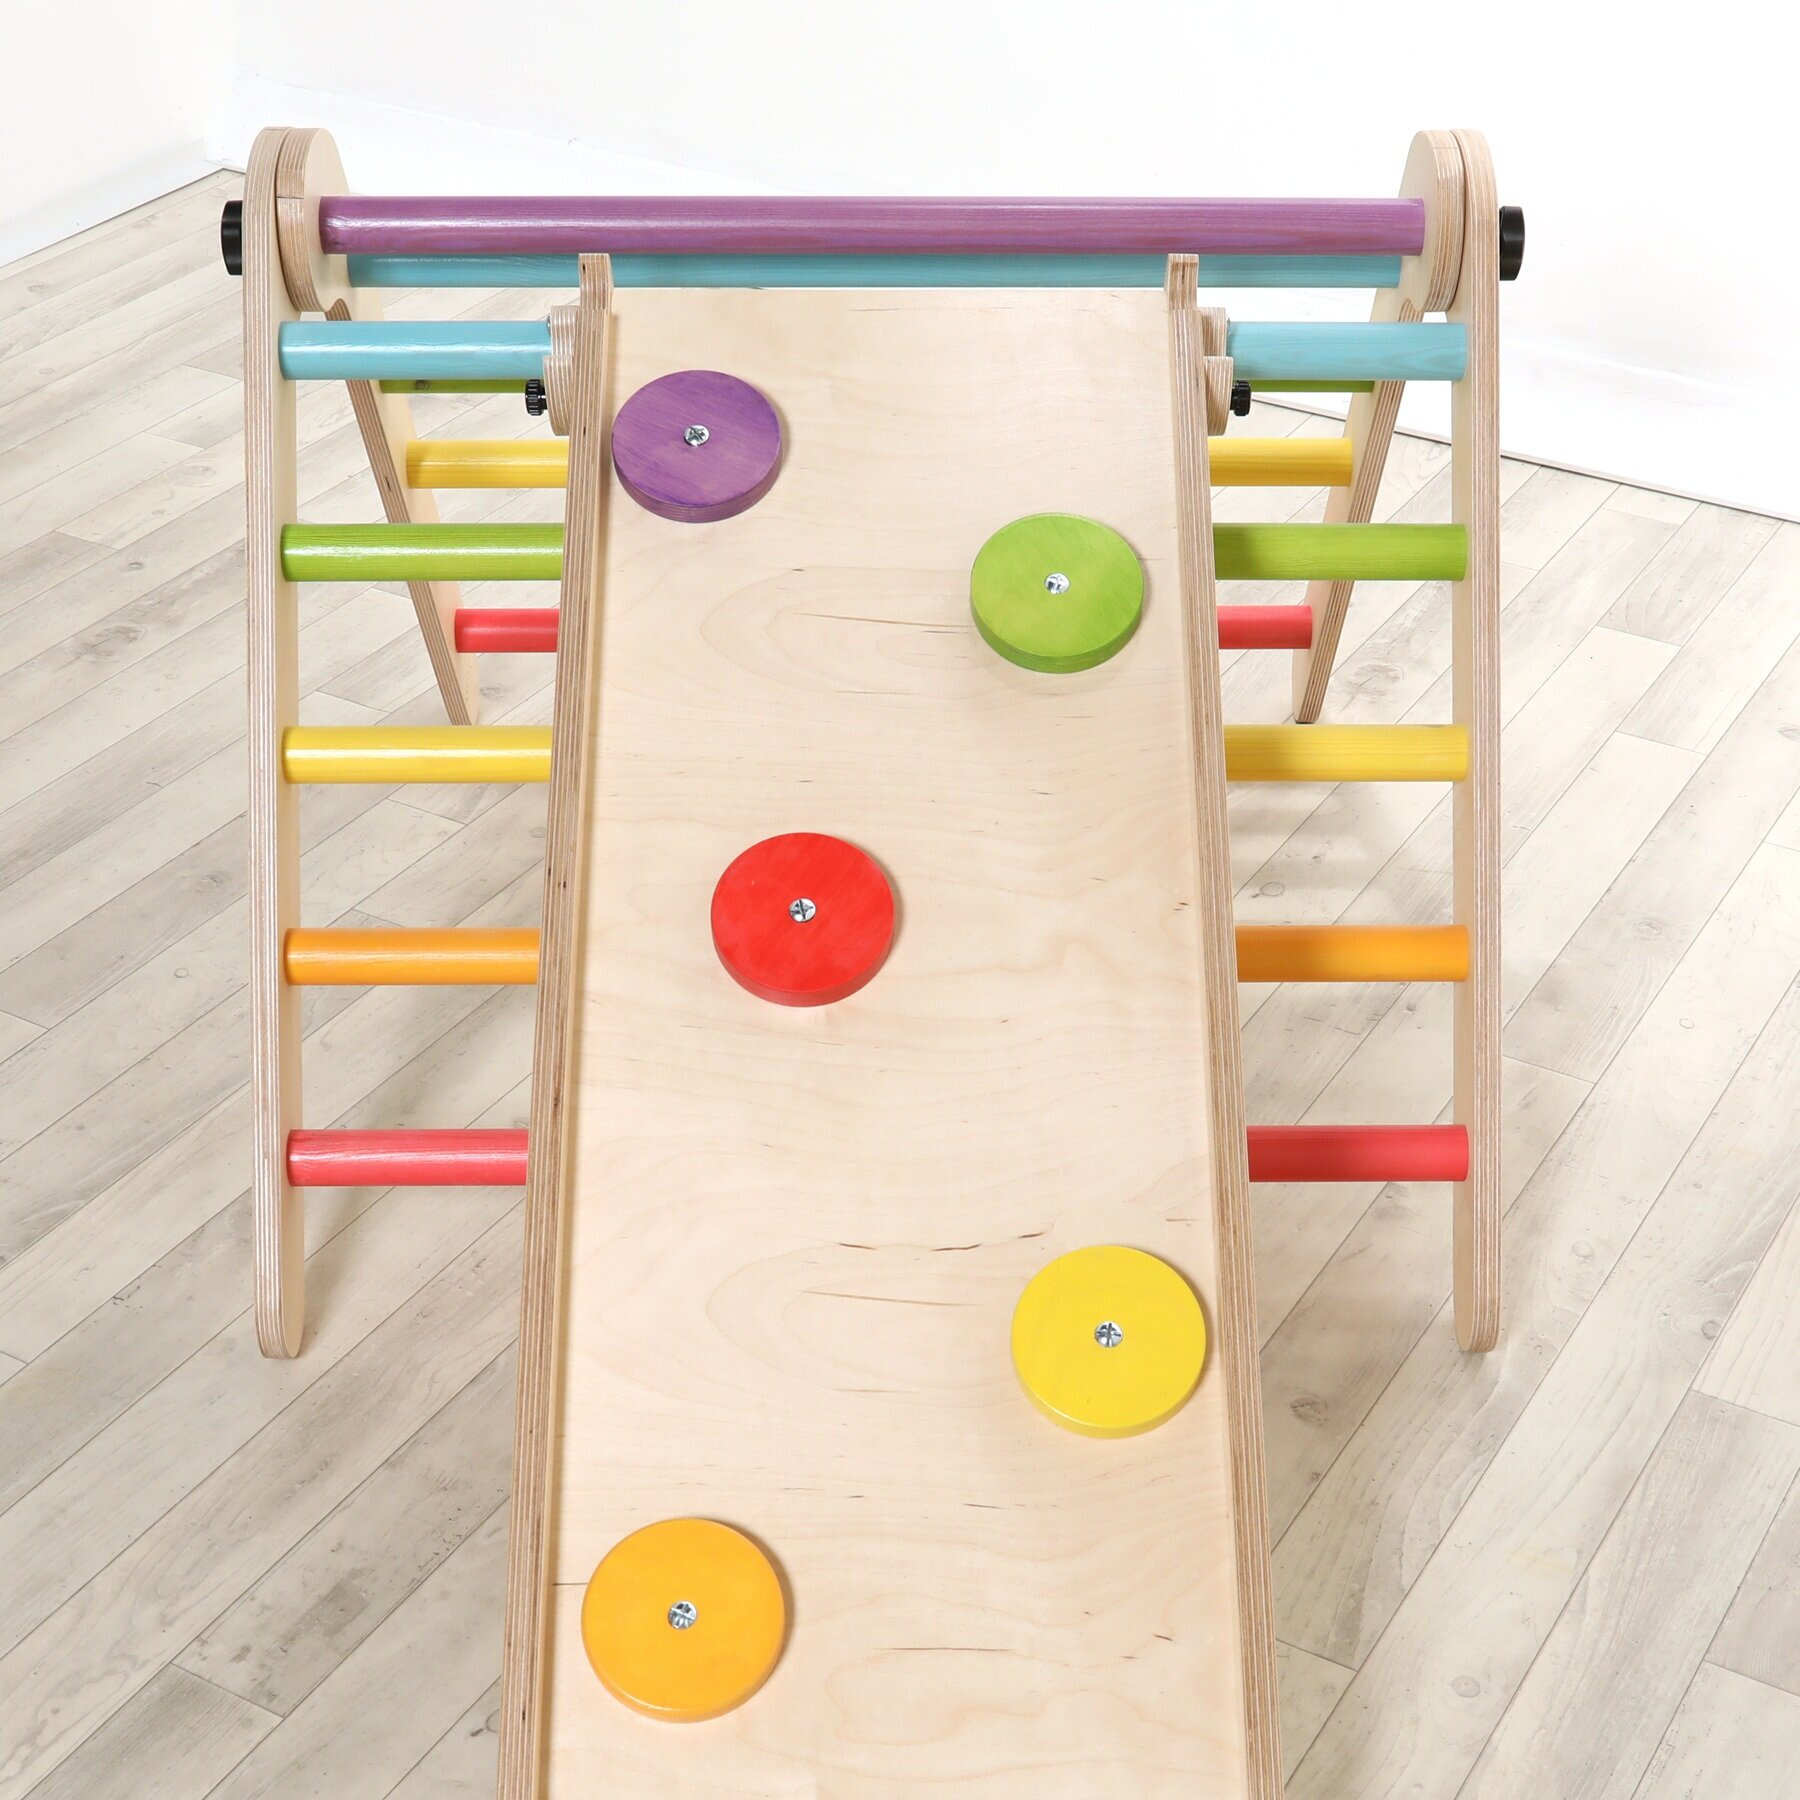 Sawdust & Rainbows - Indoor Climbing frames inspired by the concept of a Pikler triangle. Encourage movement, balance and dexterity with a Handmade Piece from Sawdust & Rainbows<<< Click the image to see our Products